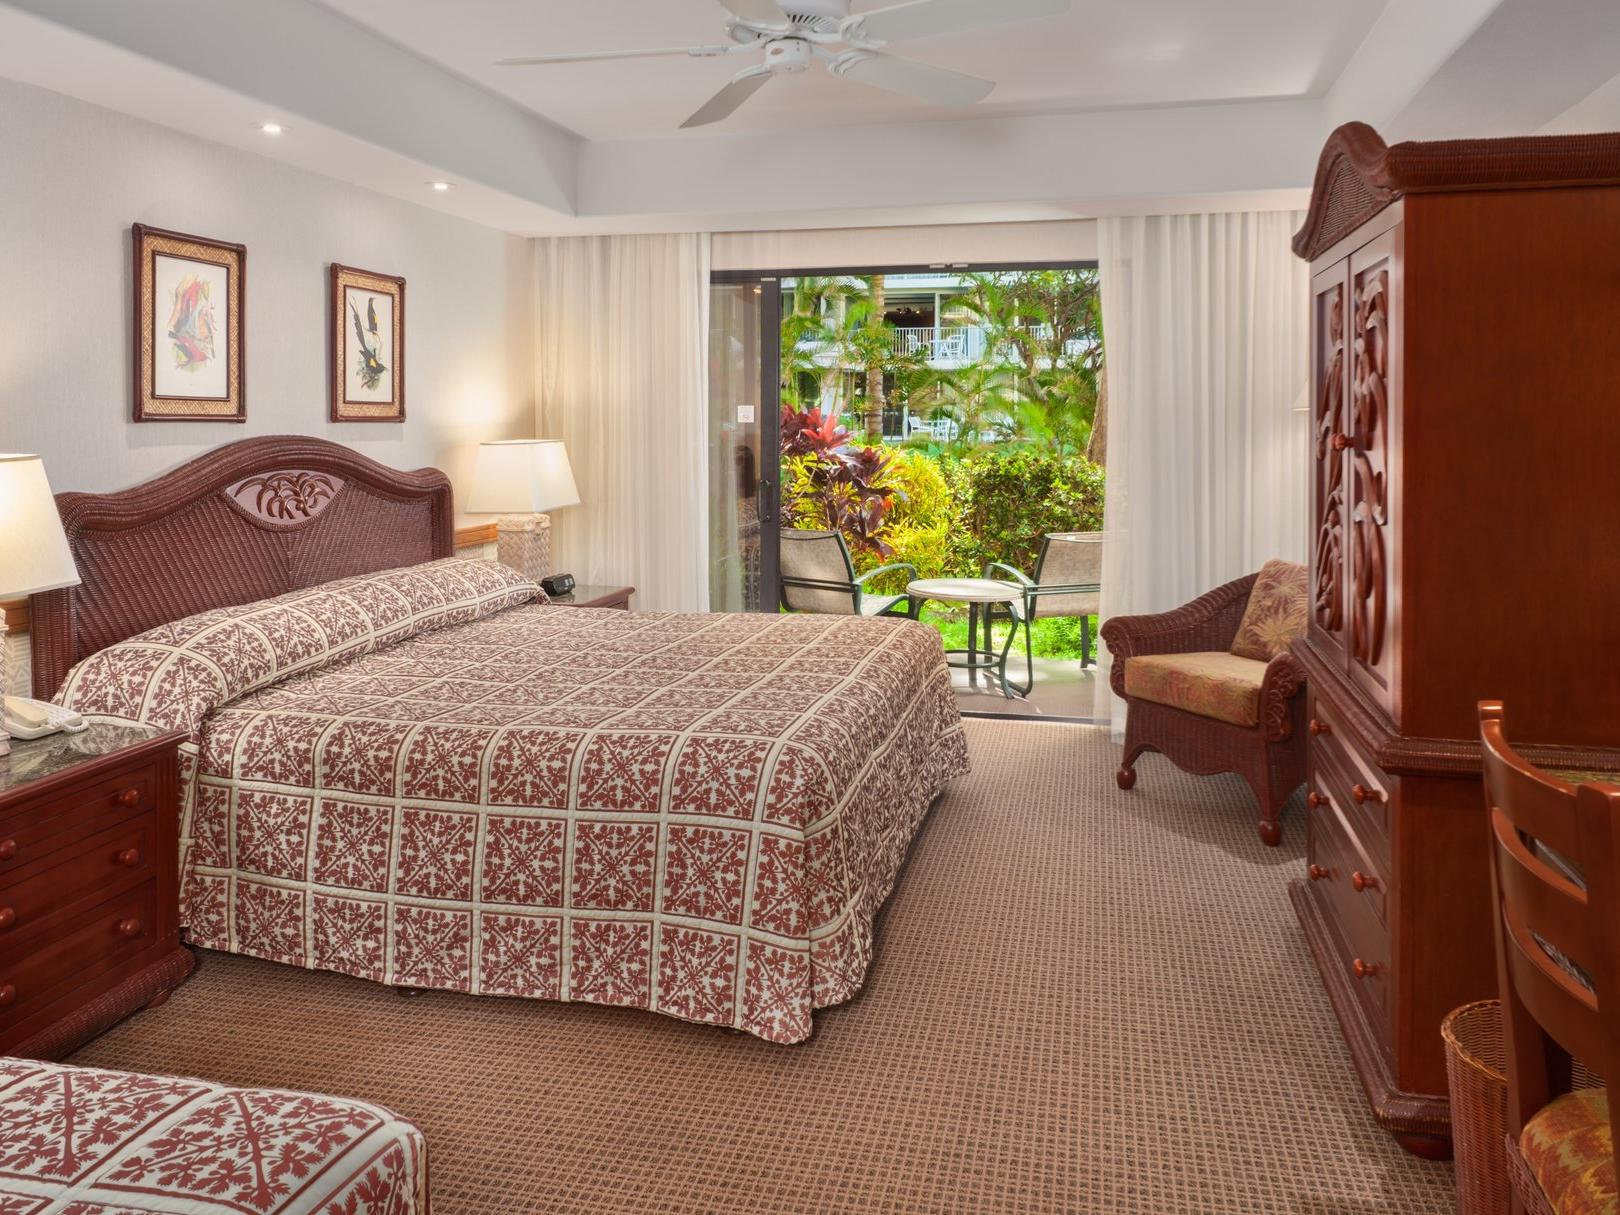 two beds in hotel room with view of tropical setting